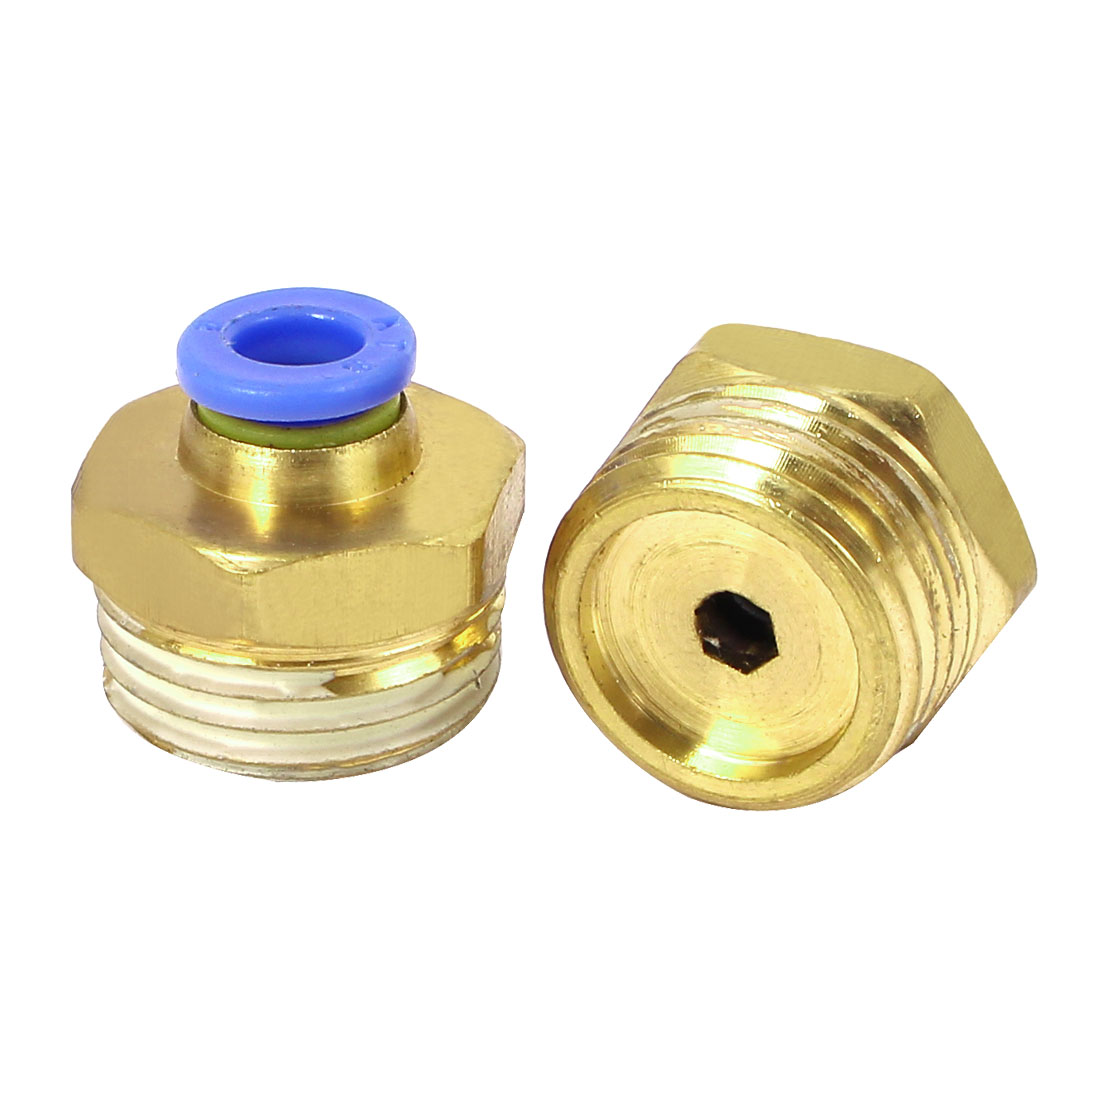 20mm Dia Male Thread Industry Pipe Tube Quick Connecting Fittings 2pcs